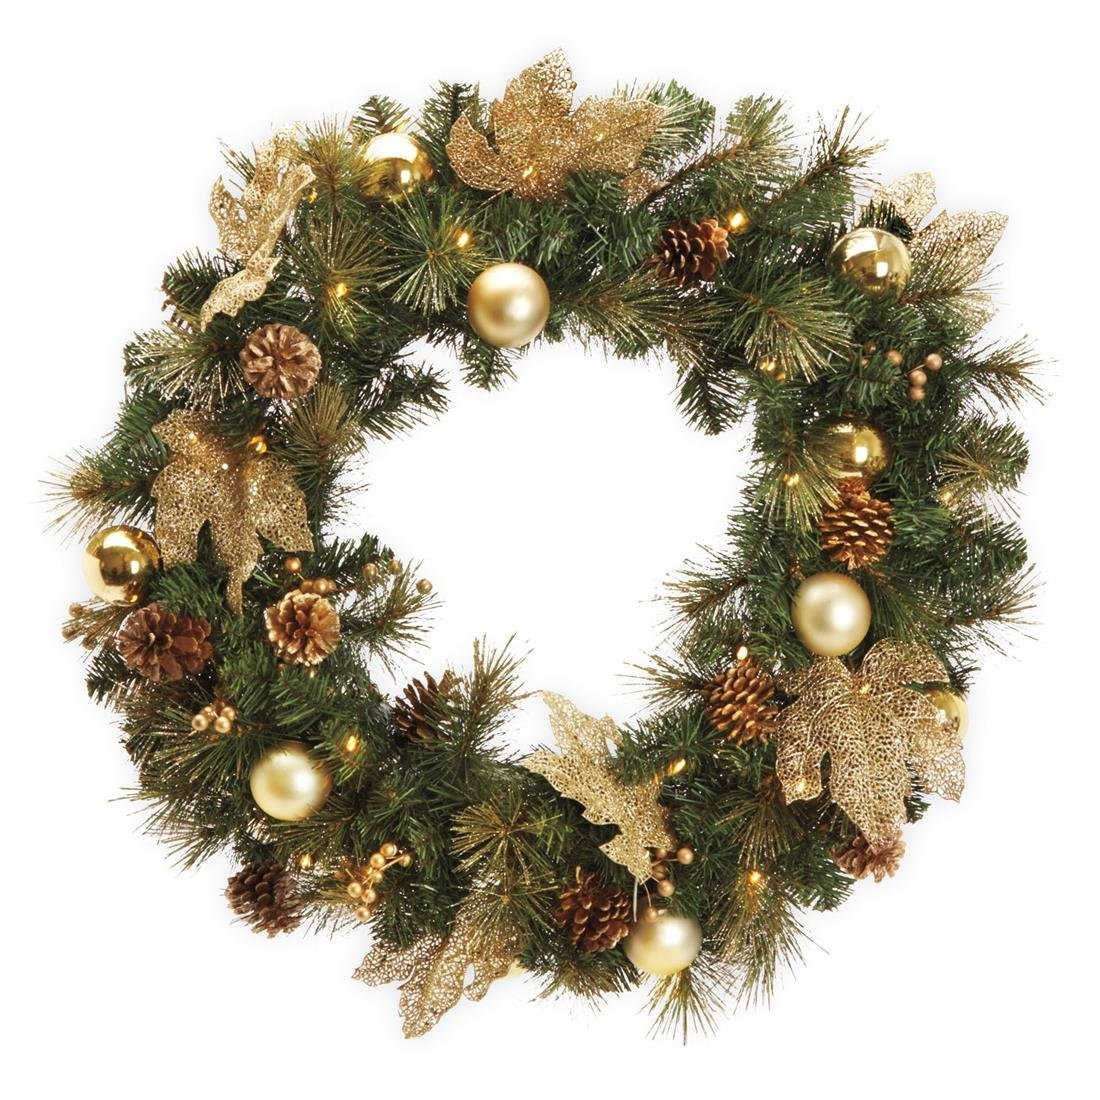 time2design custom cabinetry and interior design kitchen and bath specialist sarasota fl go for the gold holiday christmas wreath